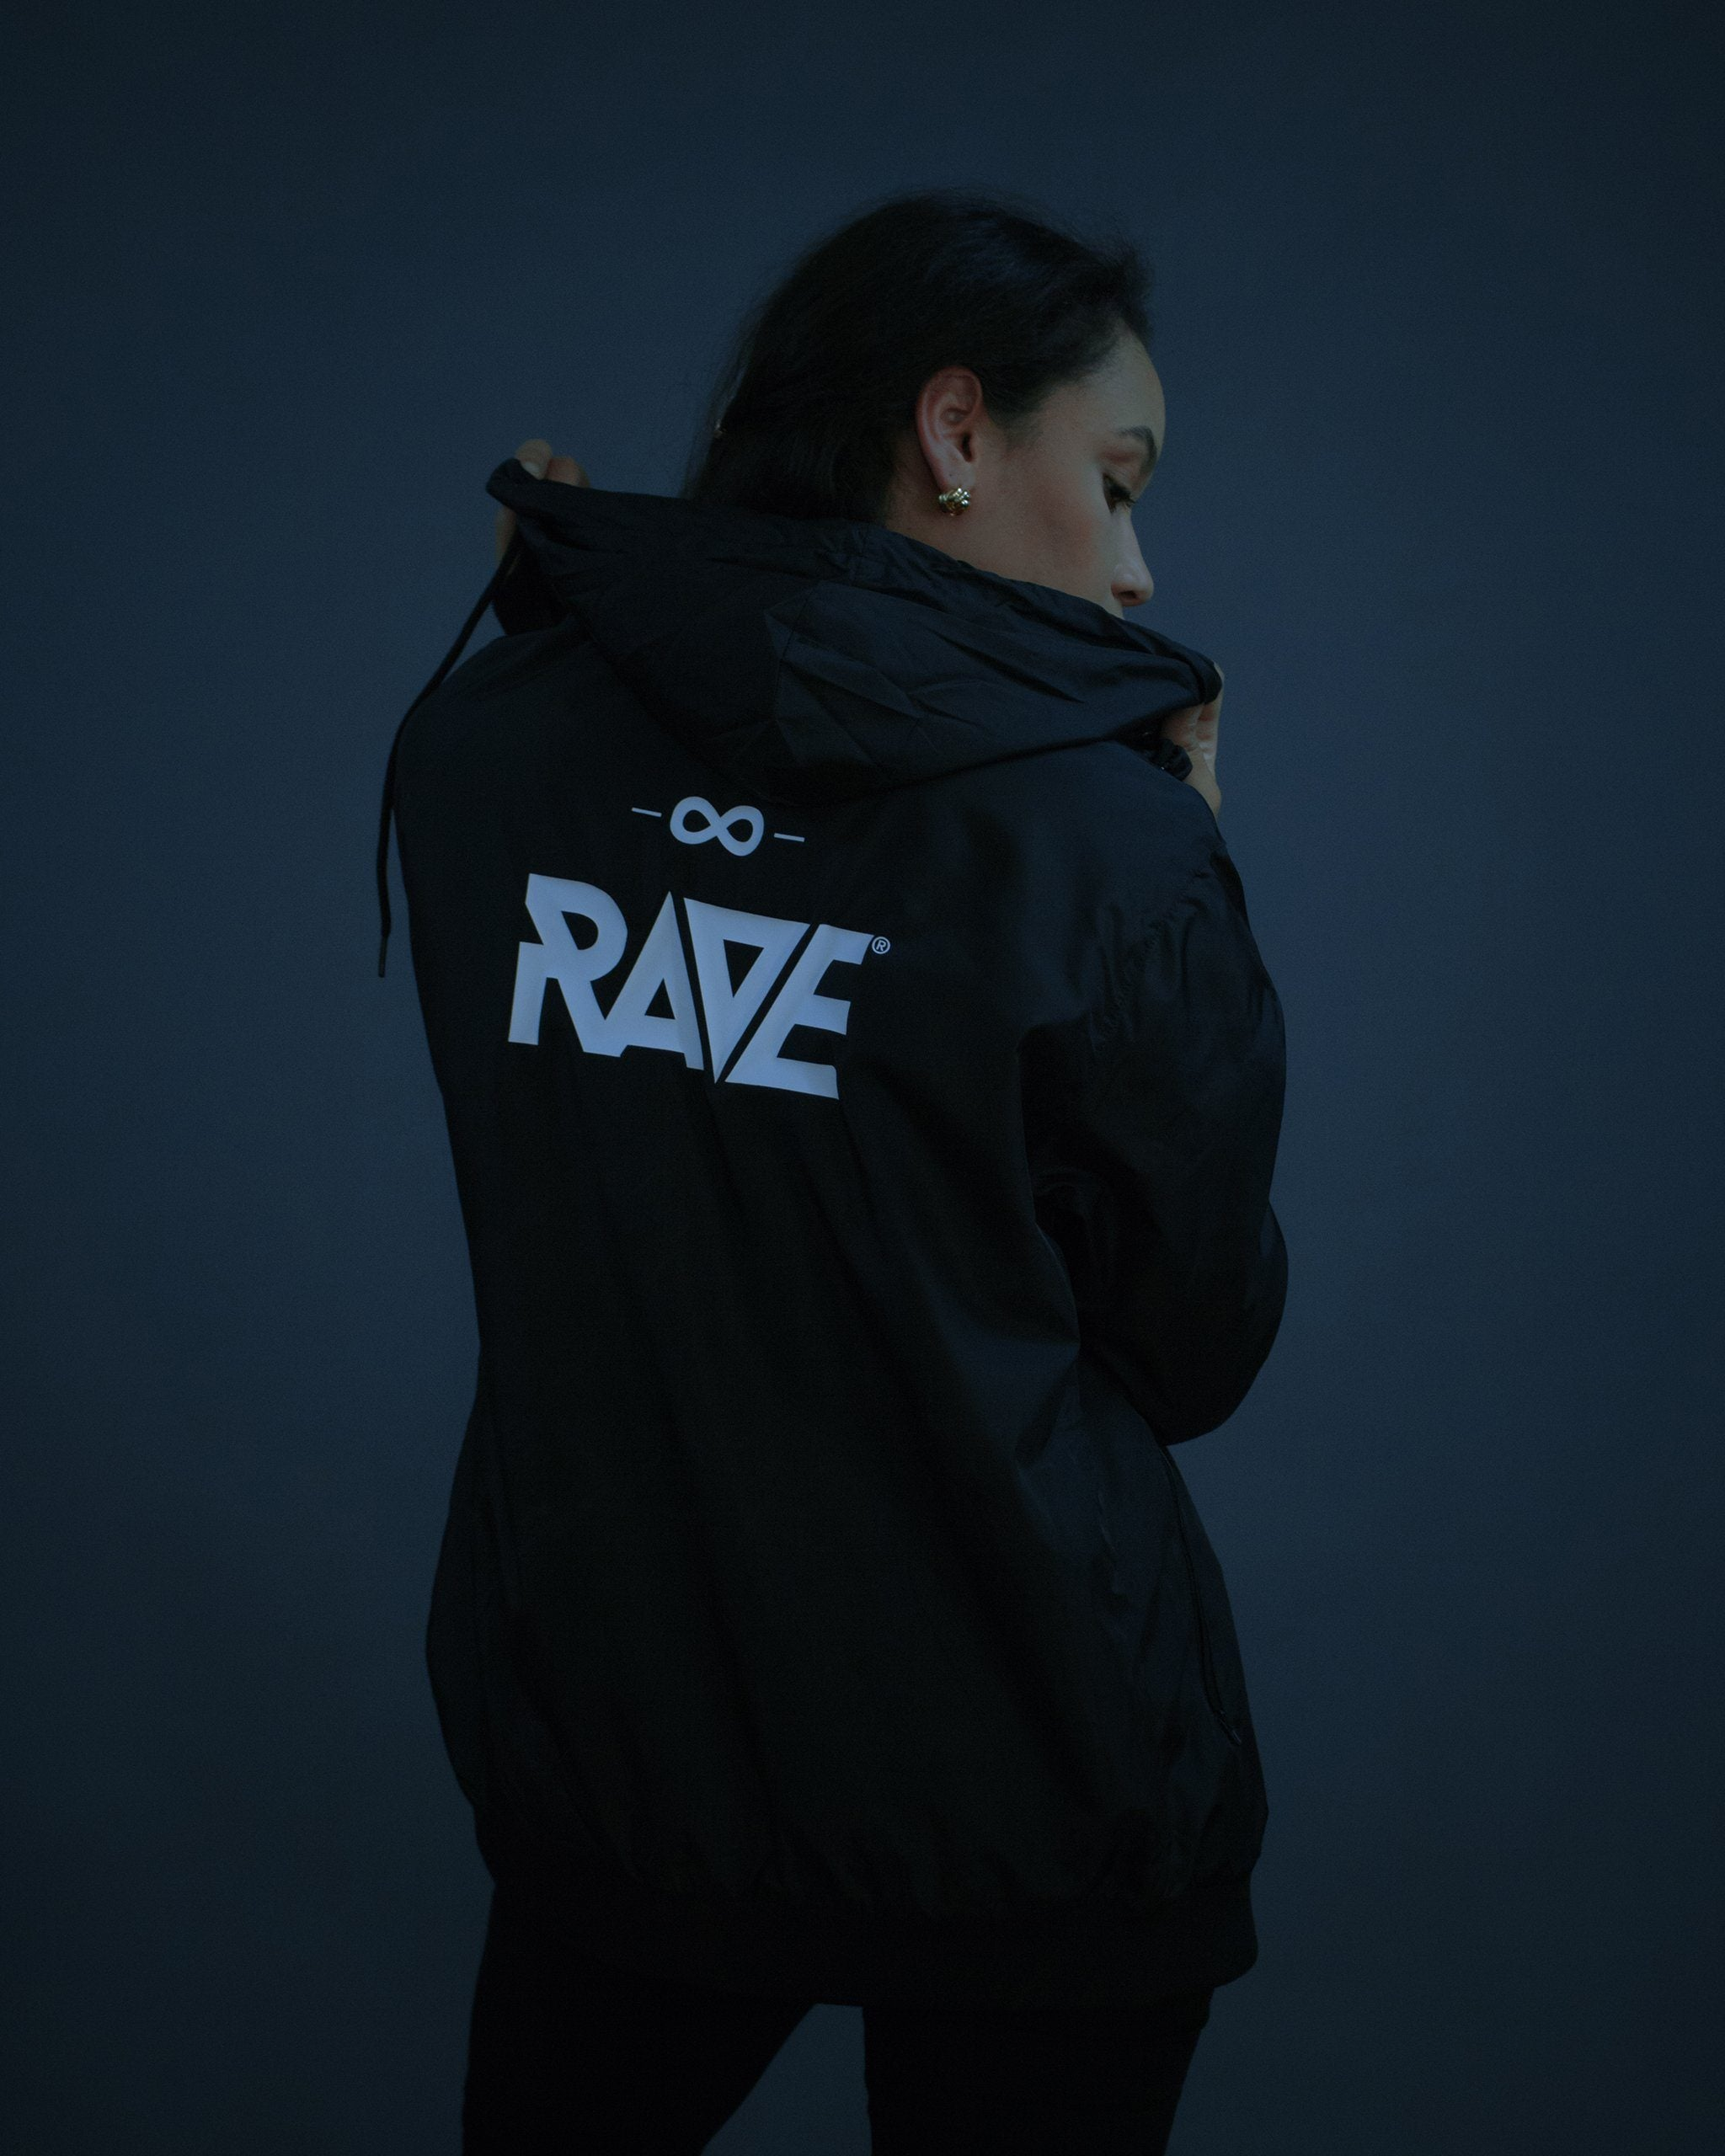 Windbreaker from RAVE Clothing